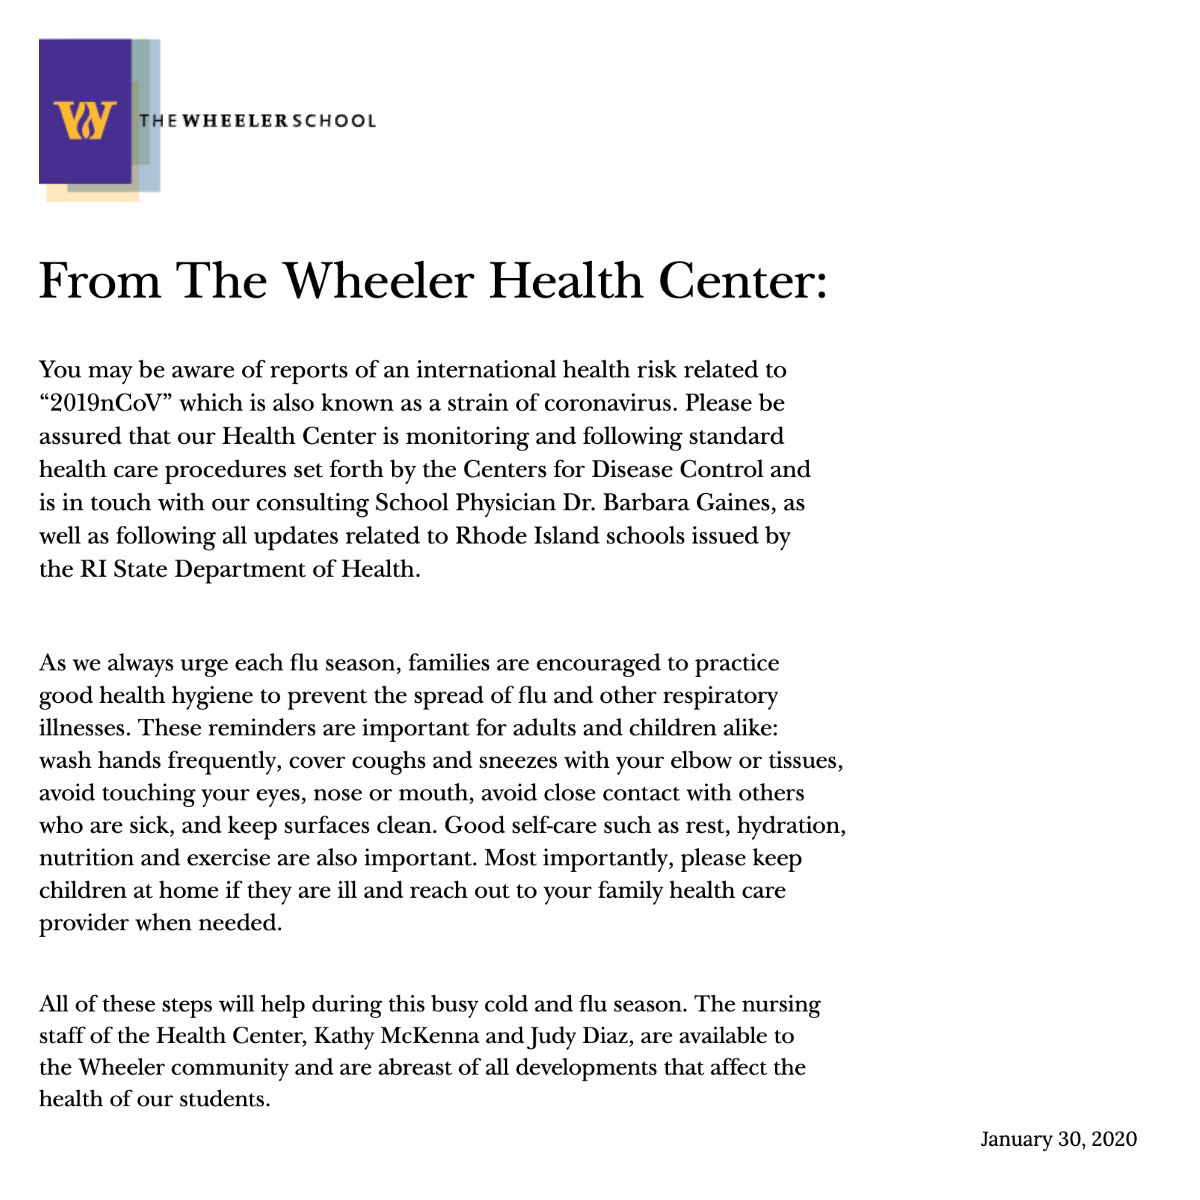 "From The Wheeler Health Center:   From The Wheeler Health Center:         You may be aware of reports of an international health risk related to ""2019nCoV"" which is also known as a strain of coronavirus.  Please be assured that our Health Center is monitoring and following standard health care procedures set forth by the Centers for Disease Control and is in touch with our consulting School Physician Dr. Barbara Gaines, as well as following all updates related to Rhode Island schools issued by the RI State Department of Health.     As we always urge each flu season, families are encouraged to practice good health hygiene to prevent the spread of flu and other respiratory illnesses. These reminders are important for adults and children alike: wash hands frequently, cover coughs and sneezes with your elbow or tissues, avoid touching your eyes, nose or mouth, avoid close contact with others who are sick, and keep surfaces clean. Good self-care such as rest, hydration, nutrition and exercise are also important.  Most importantly, please keep children at home if they are ill and reach out to your family health care provider when needed.       All of these steps will help during this busy cold and flu season. The nursing staff of the Health Center, Kathy McKenna and Judy Diaz, are available to the Wheeler community and are abreast of all developments that affect the health of our students.   January 30, 2020"